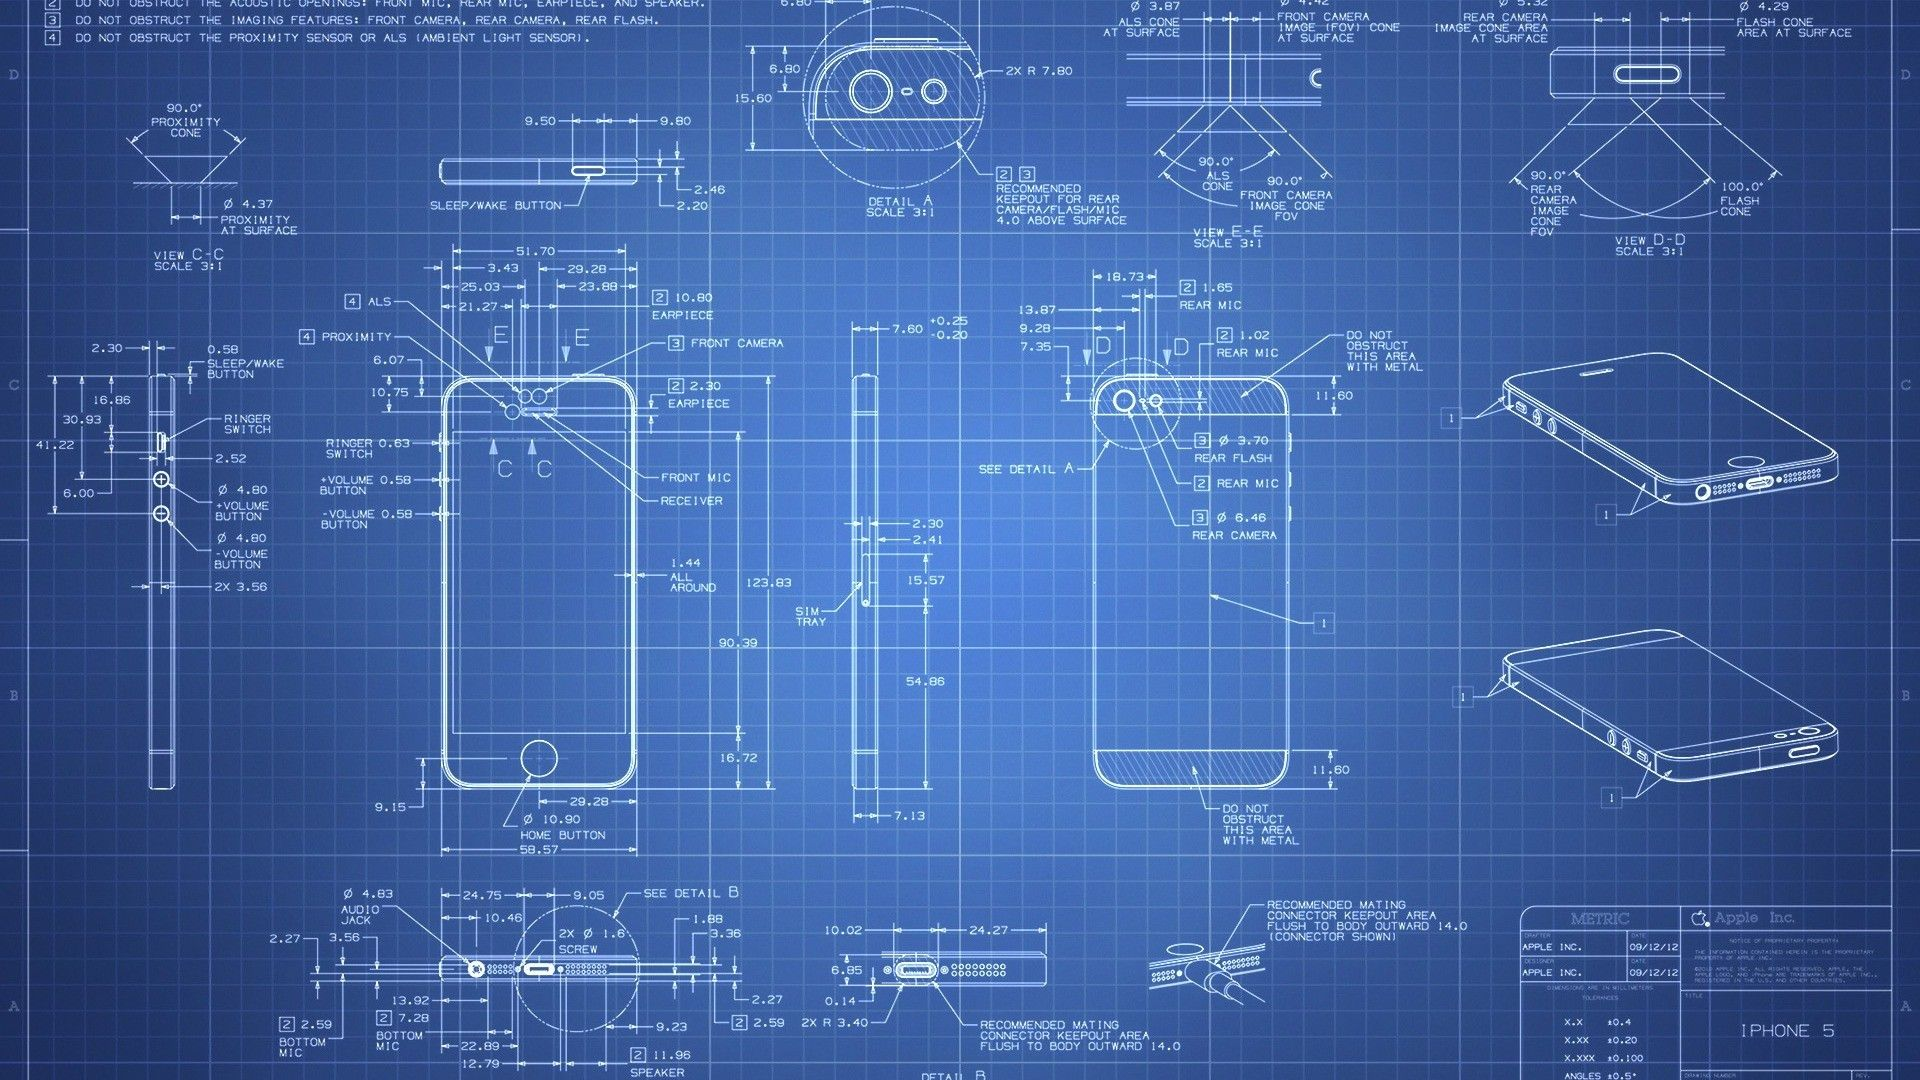 iPhone 5 Blueprint HD Wallpaper | My | Pinterest | Design layouts